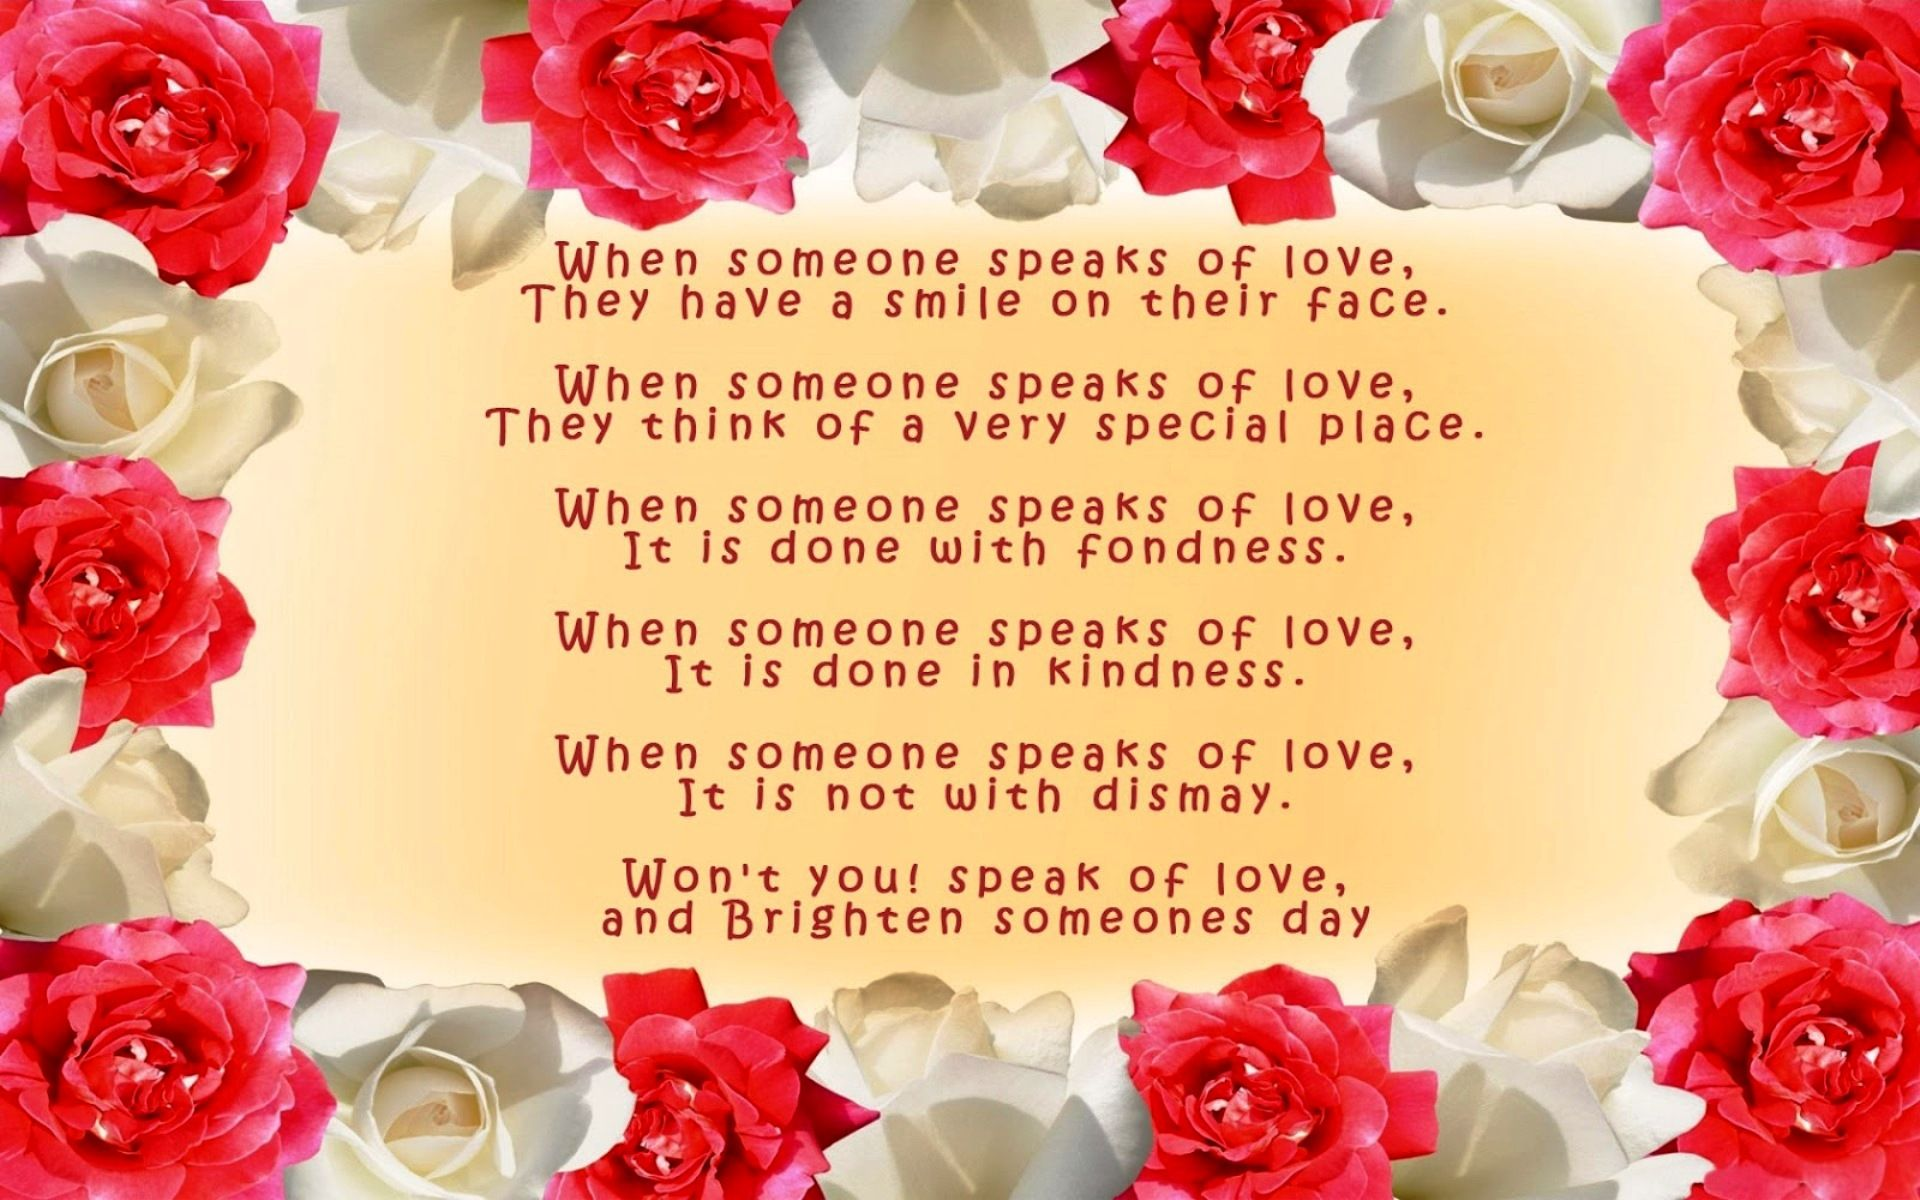 Free Love Poems And Quotes Free Download Love Poem Roses Wallpaper  Love Poem Roses